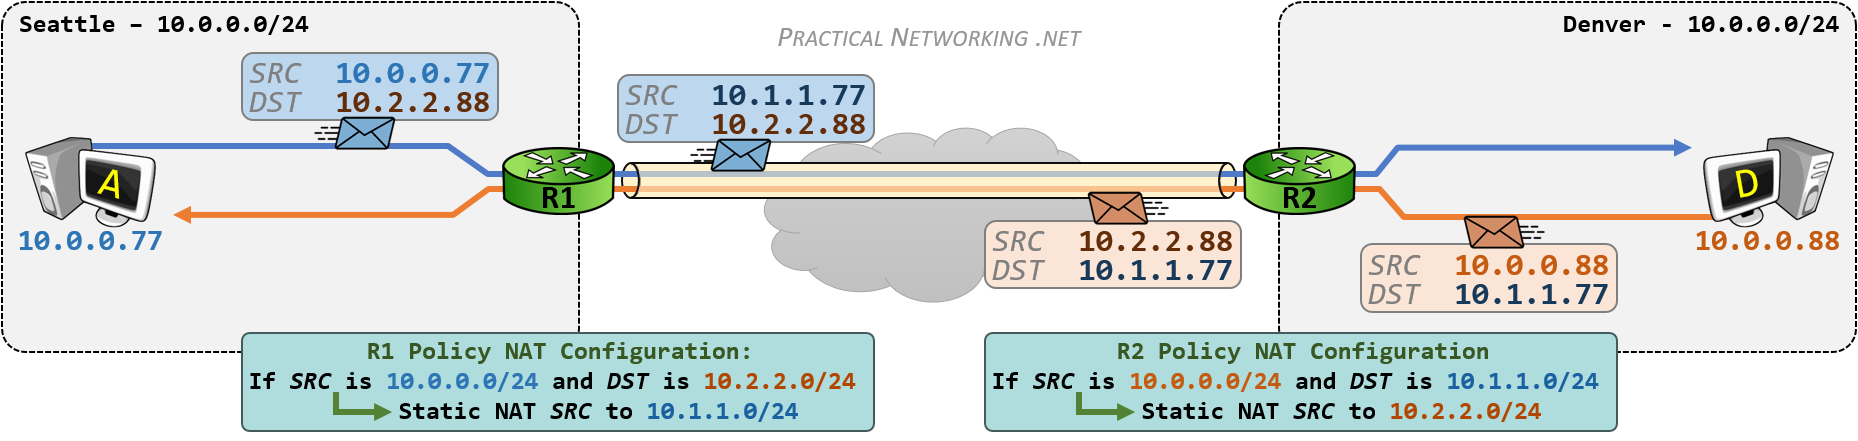 VPN Overlapping Networks - Policy NAT - Outbound Translation